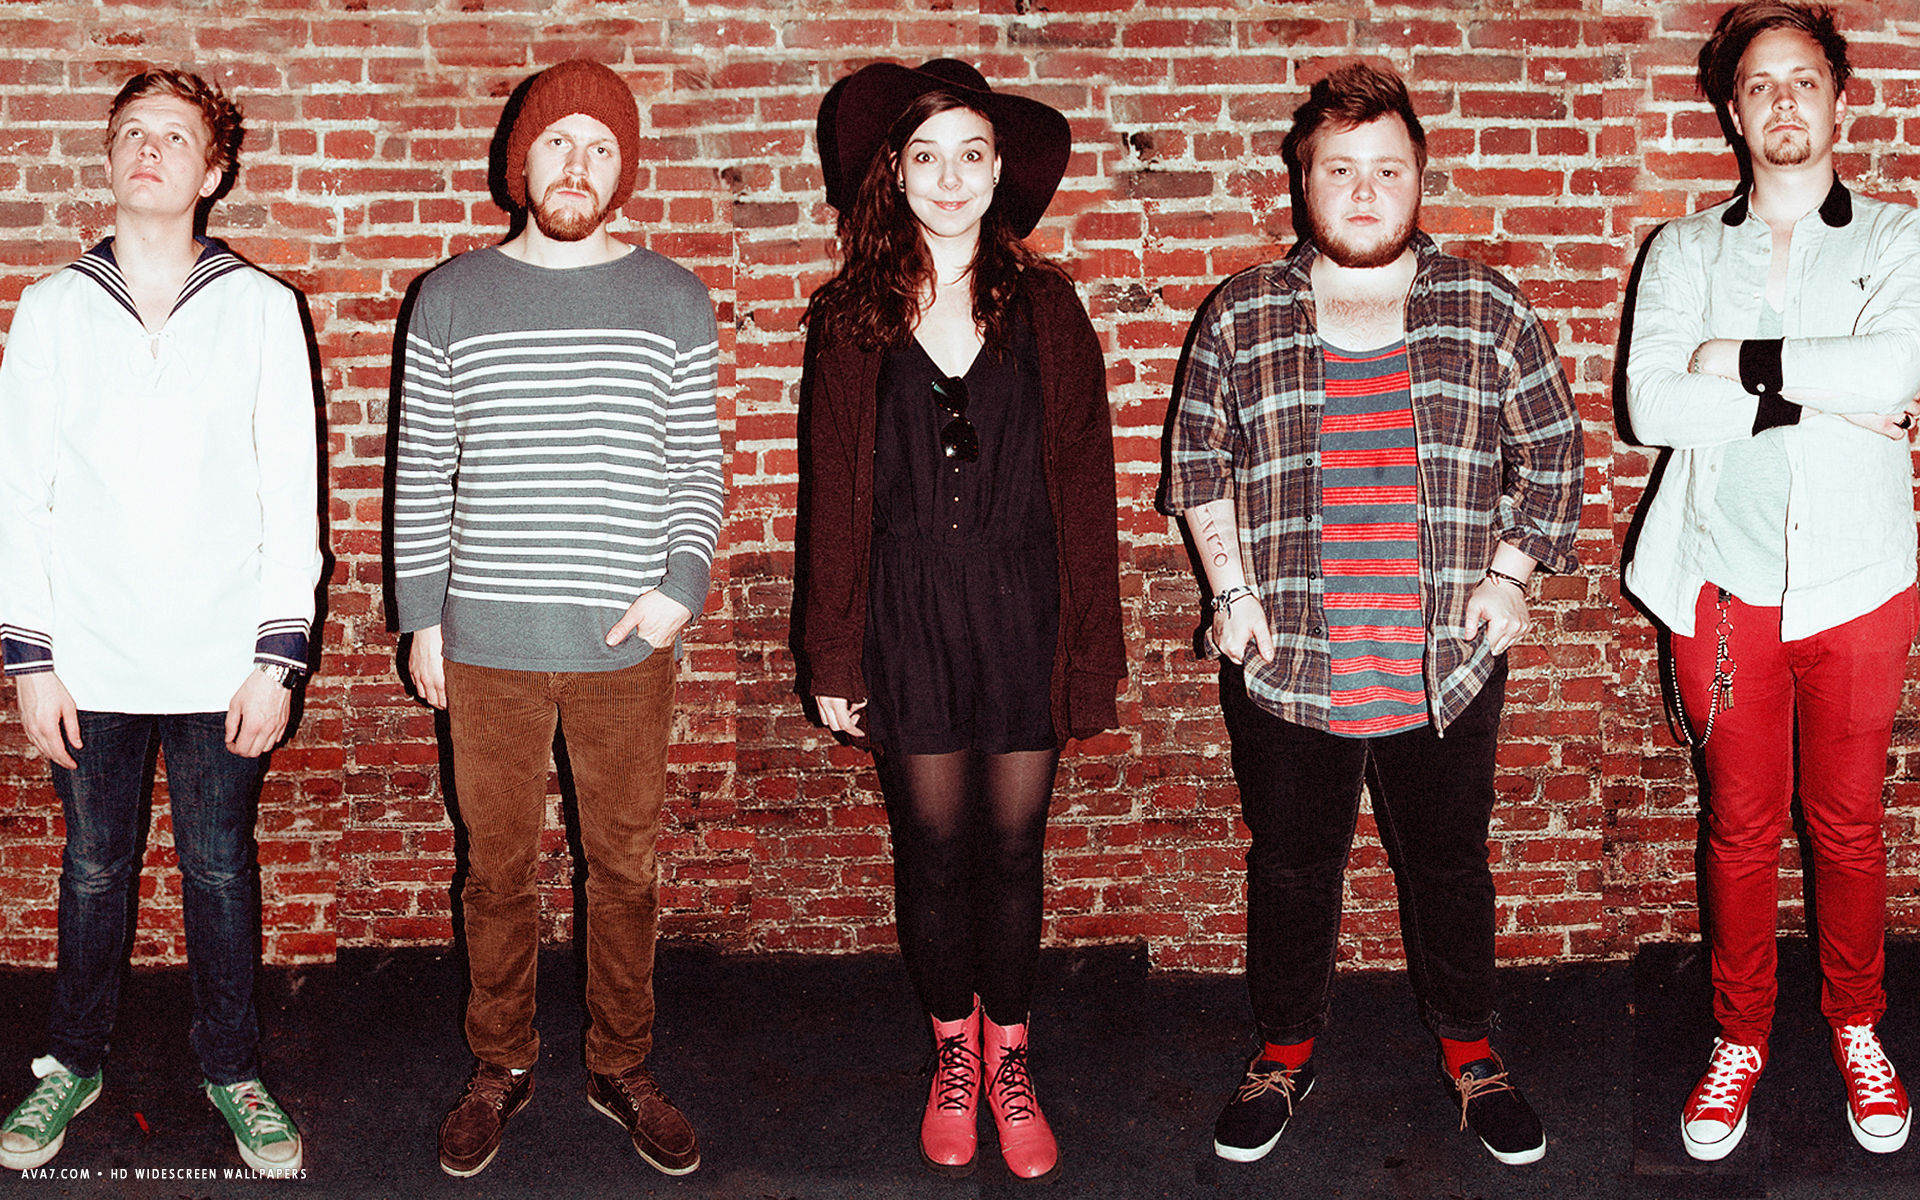 All Type 3d Wallpapers Of Monsters And Men Music Band Group Hd Widescreen